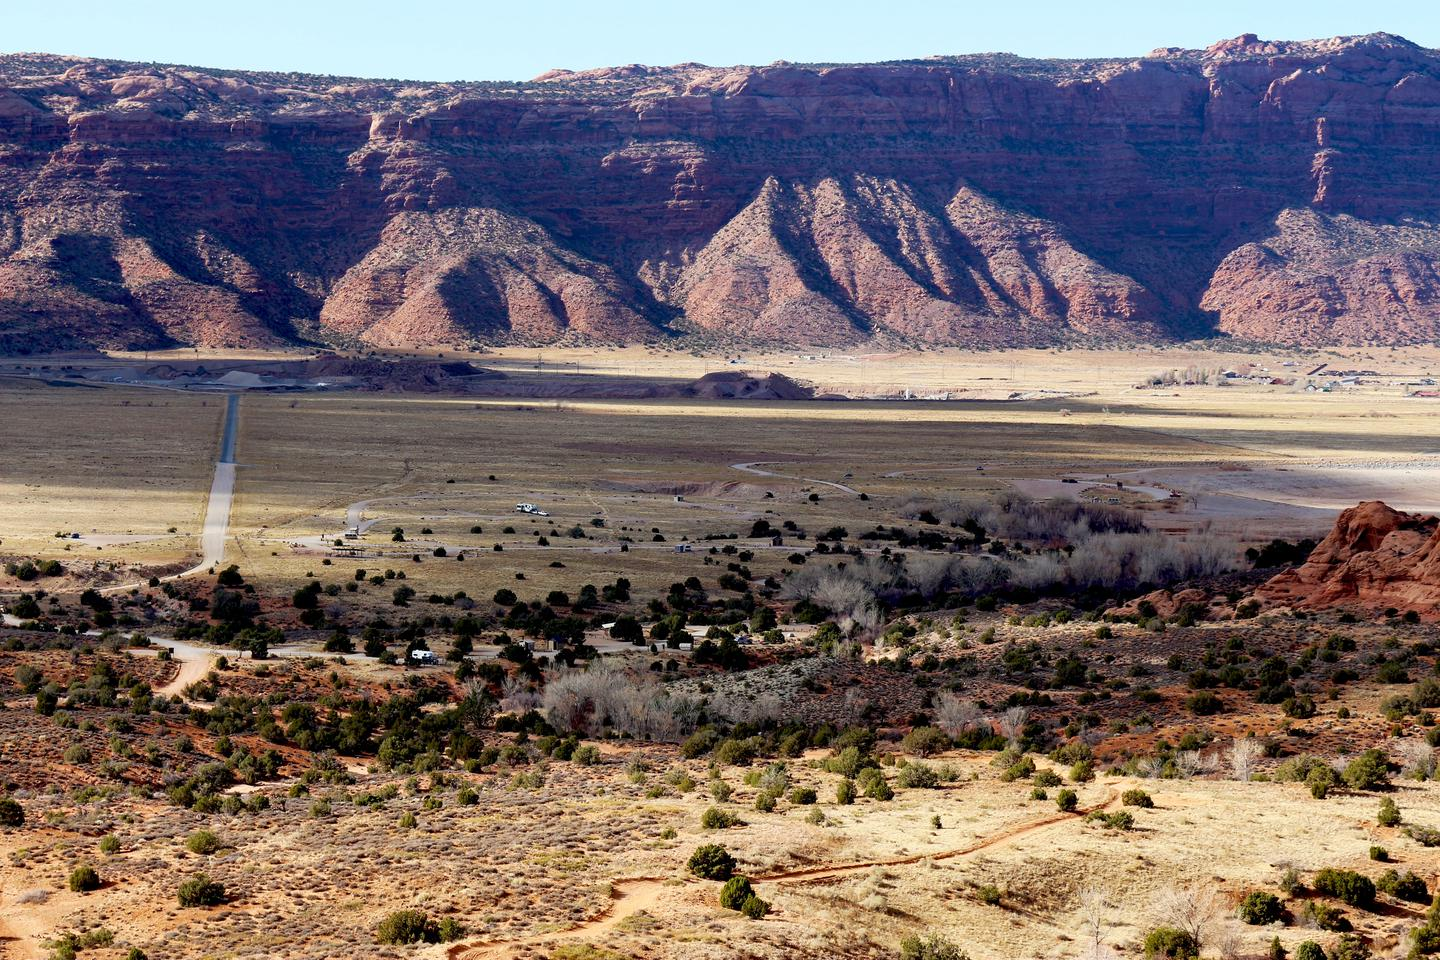 Overview of Kens Lake Campground with desert cliffs in the background.